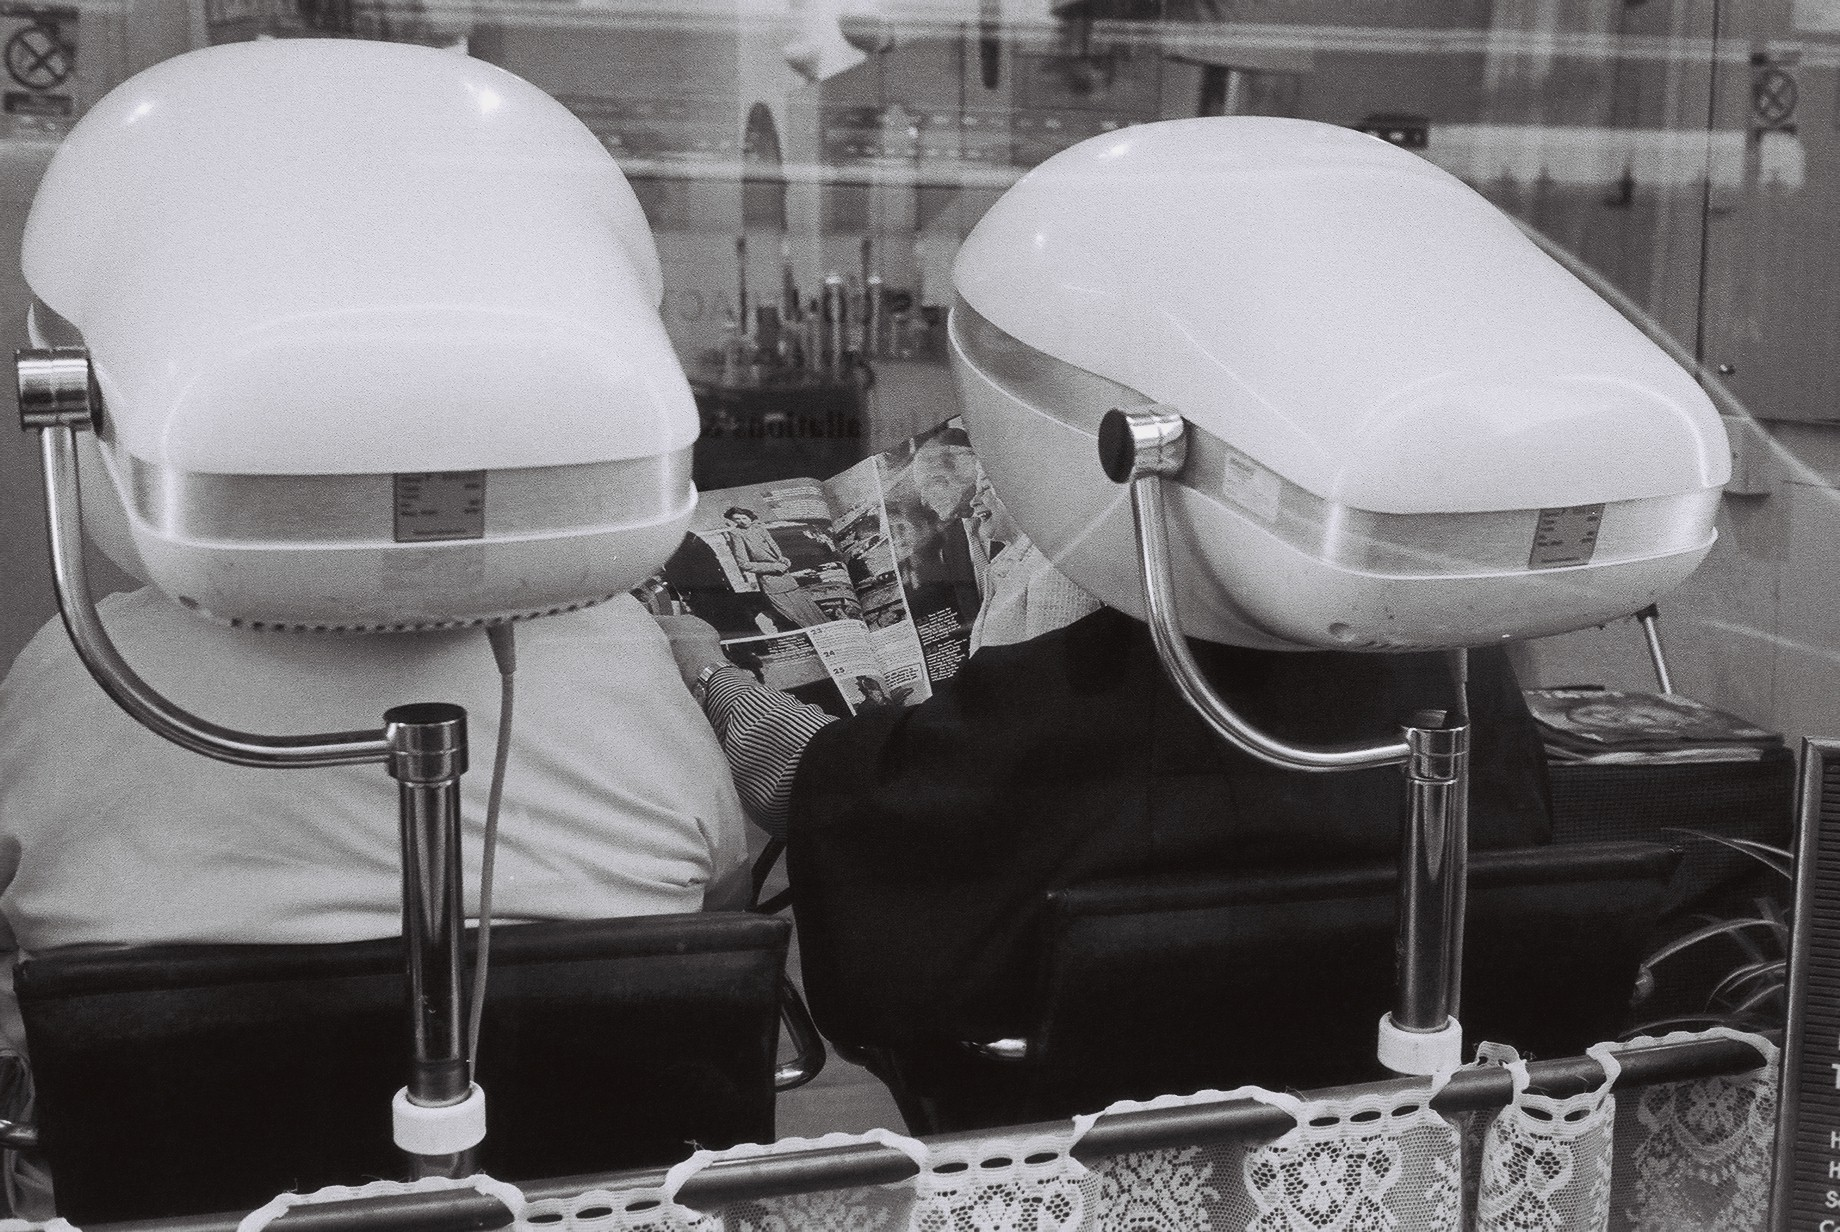 Two women in hairdresser under hairdryers